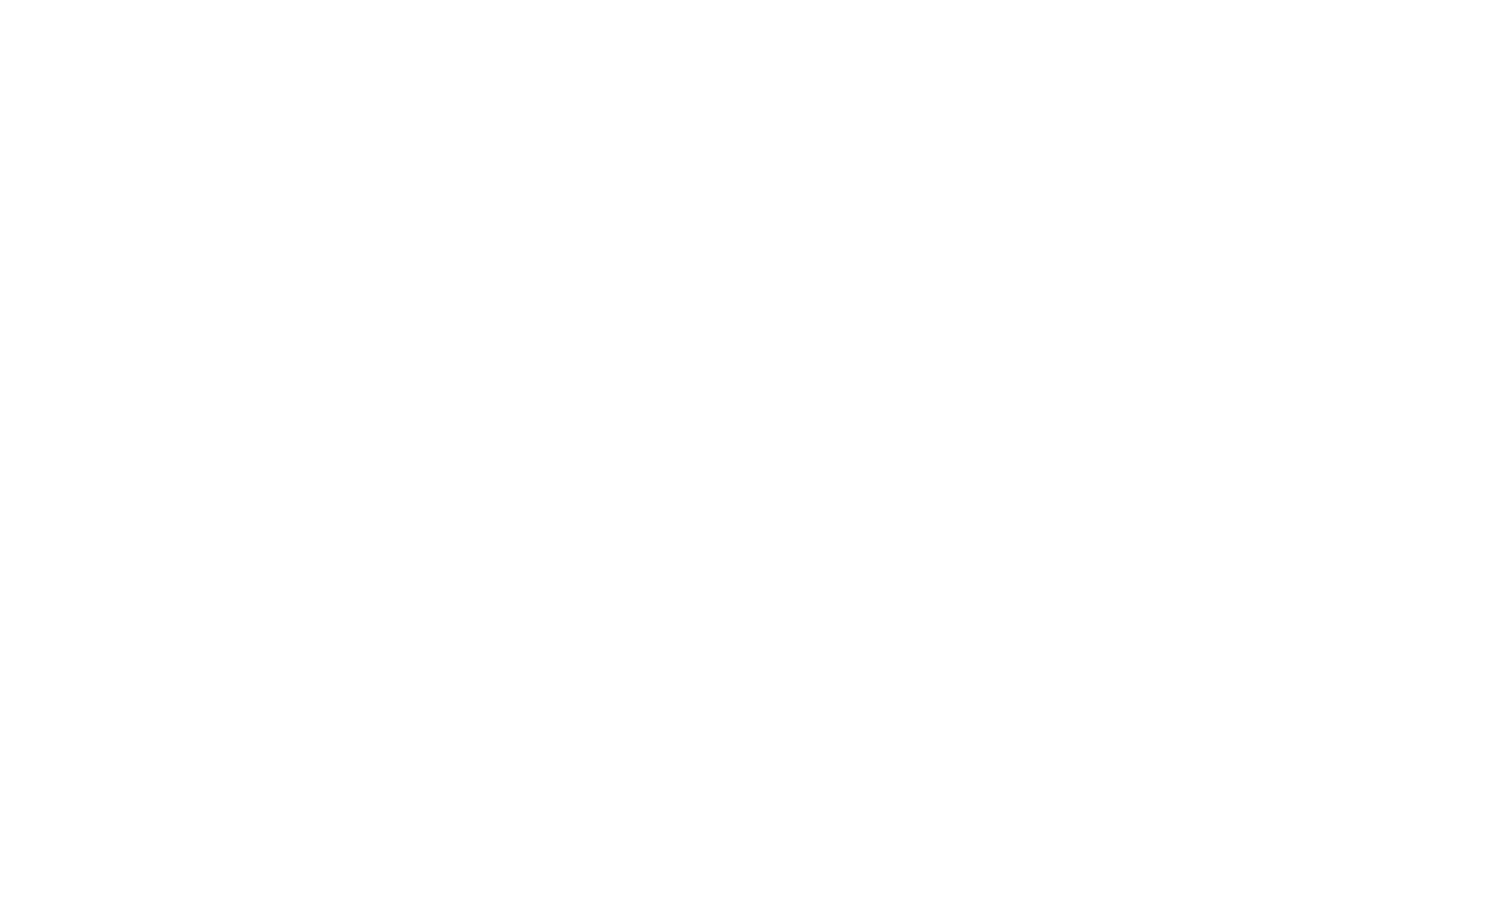 Engage Pictures